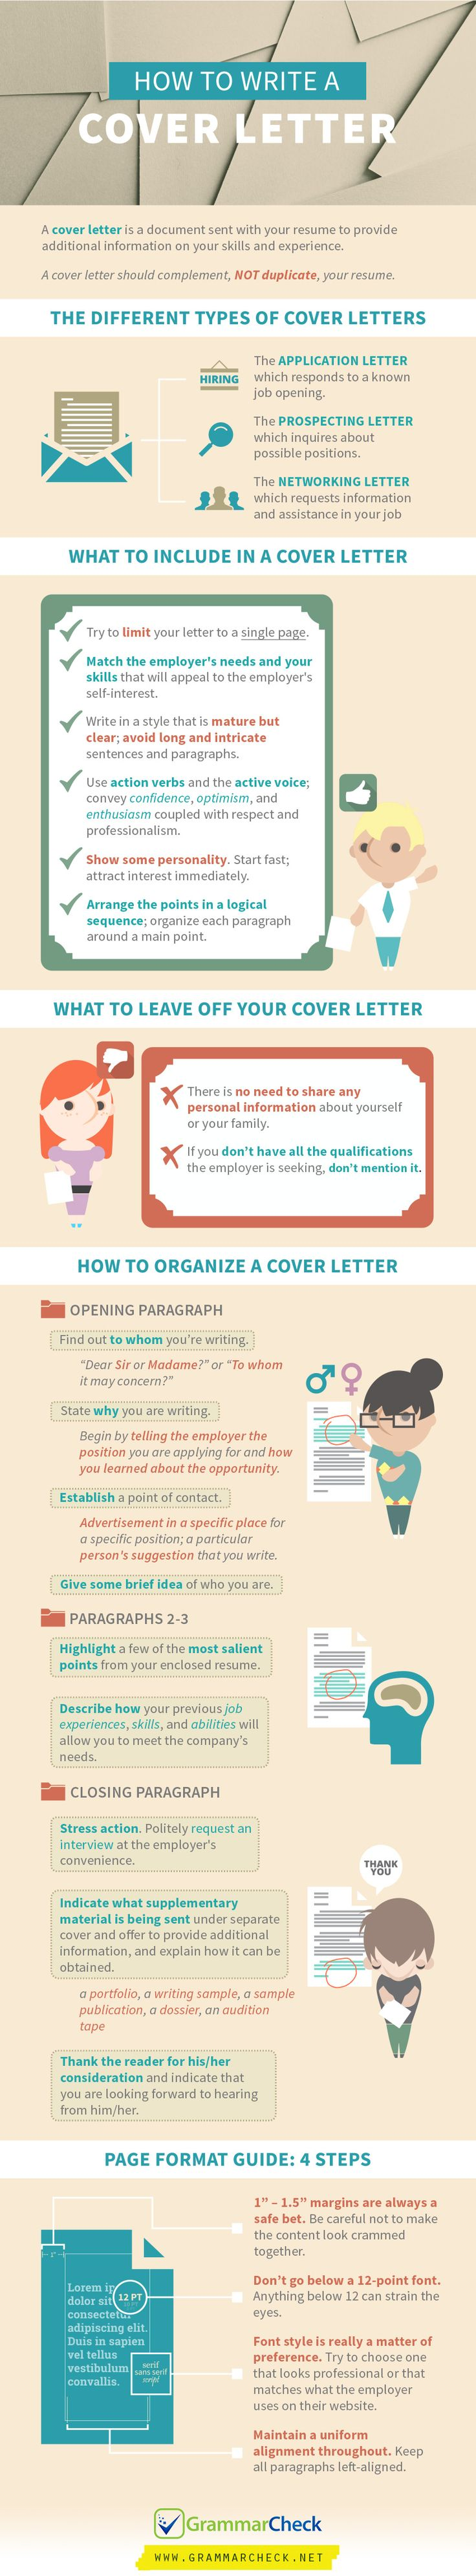 how to write a cover letter step by step - How To Write Great Cover Letters